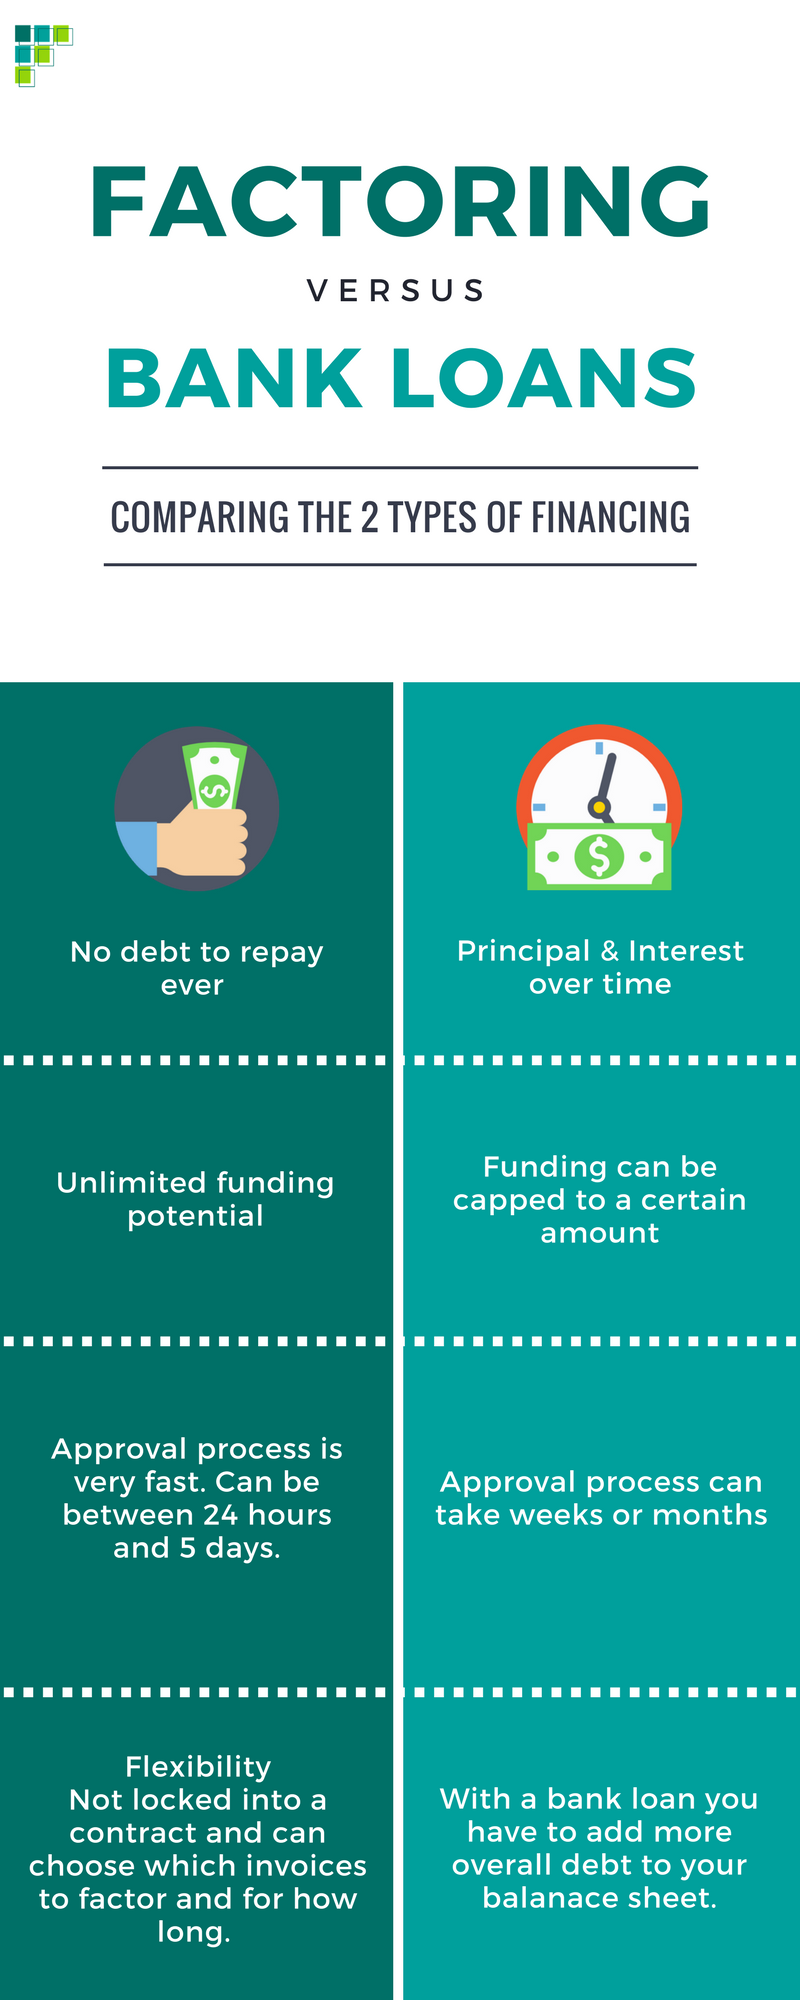 infographic comparing factoring benefits and bank loans